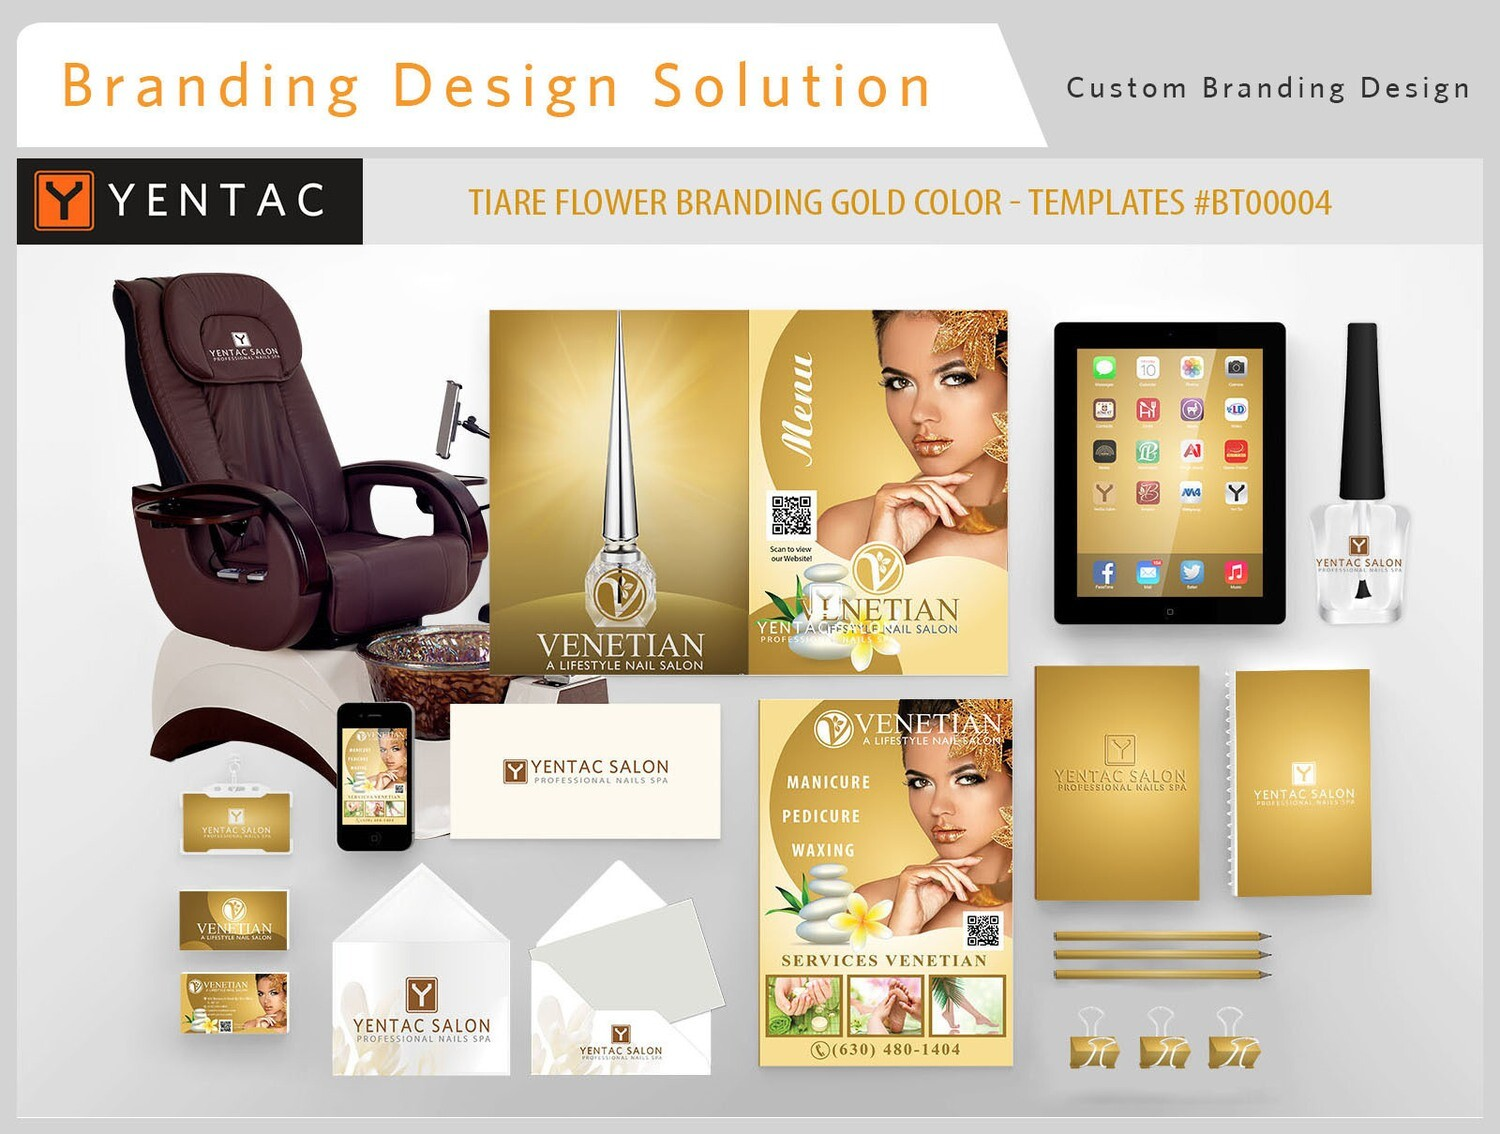 Tiare Branding  Gold Color - Stationary Mockup - YENTAC Nail Salon Templates:  BT000004